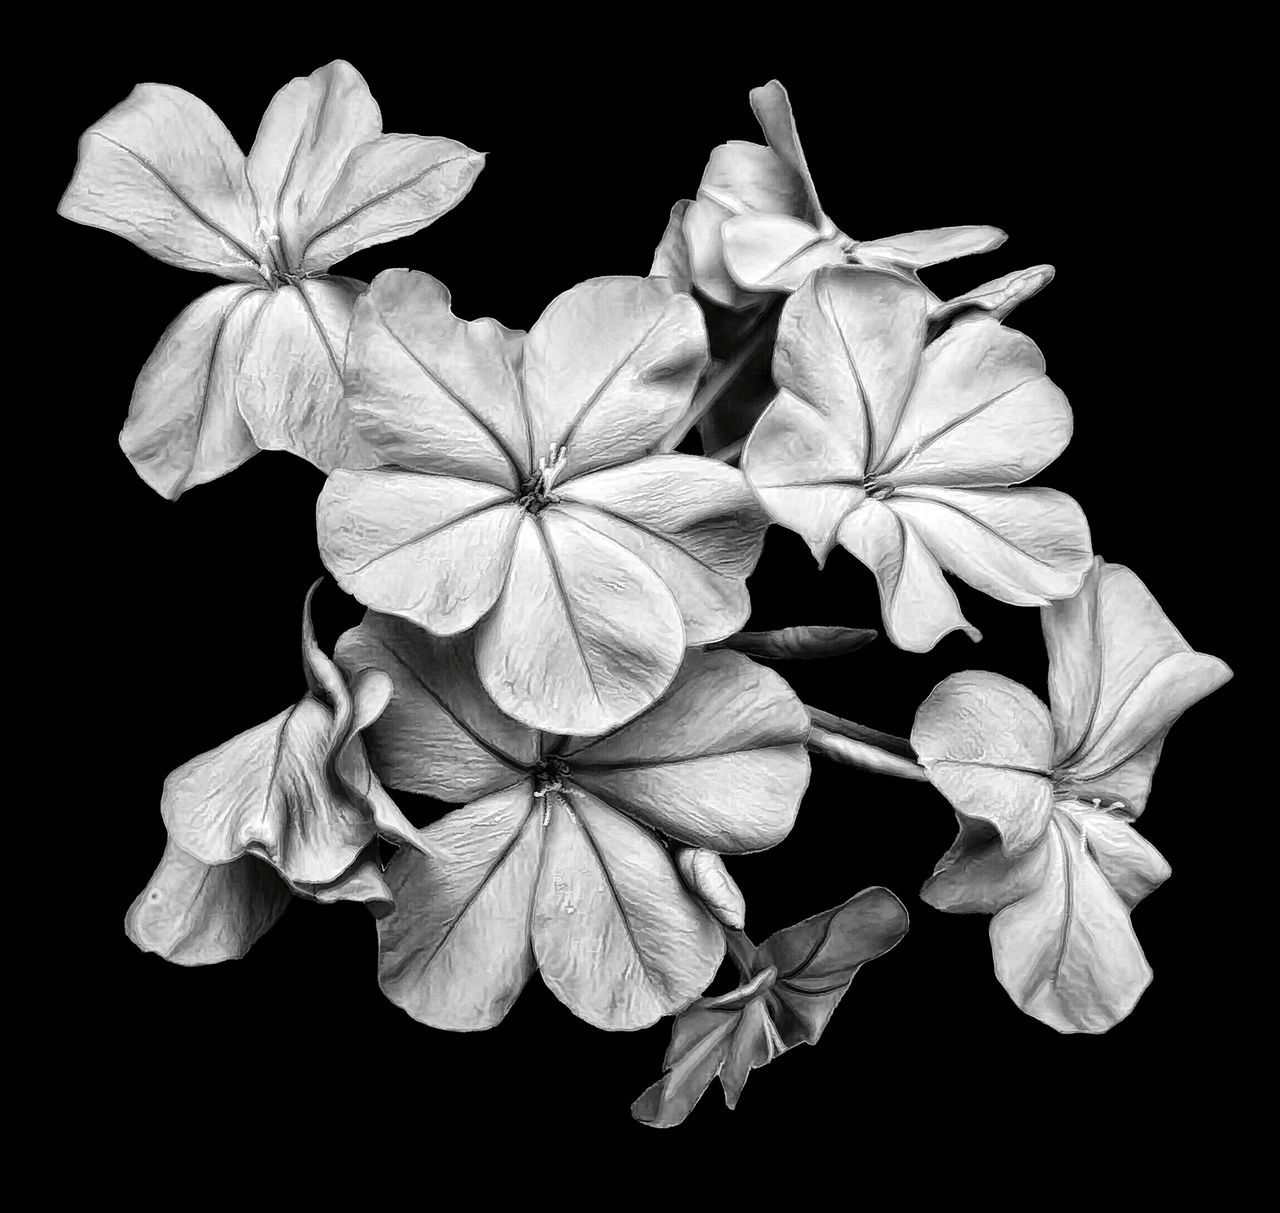 Blue Plumbago Flower Blossom Bloom Floral Black & White